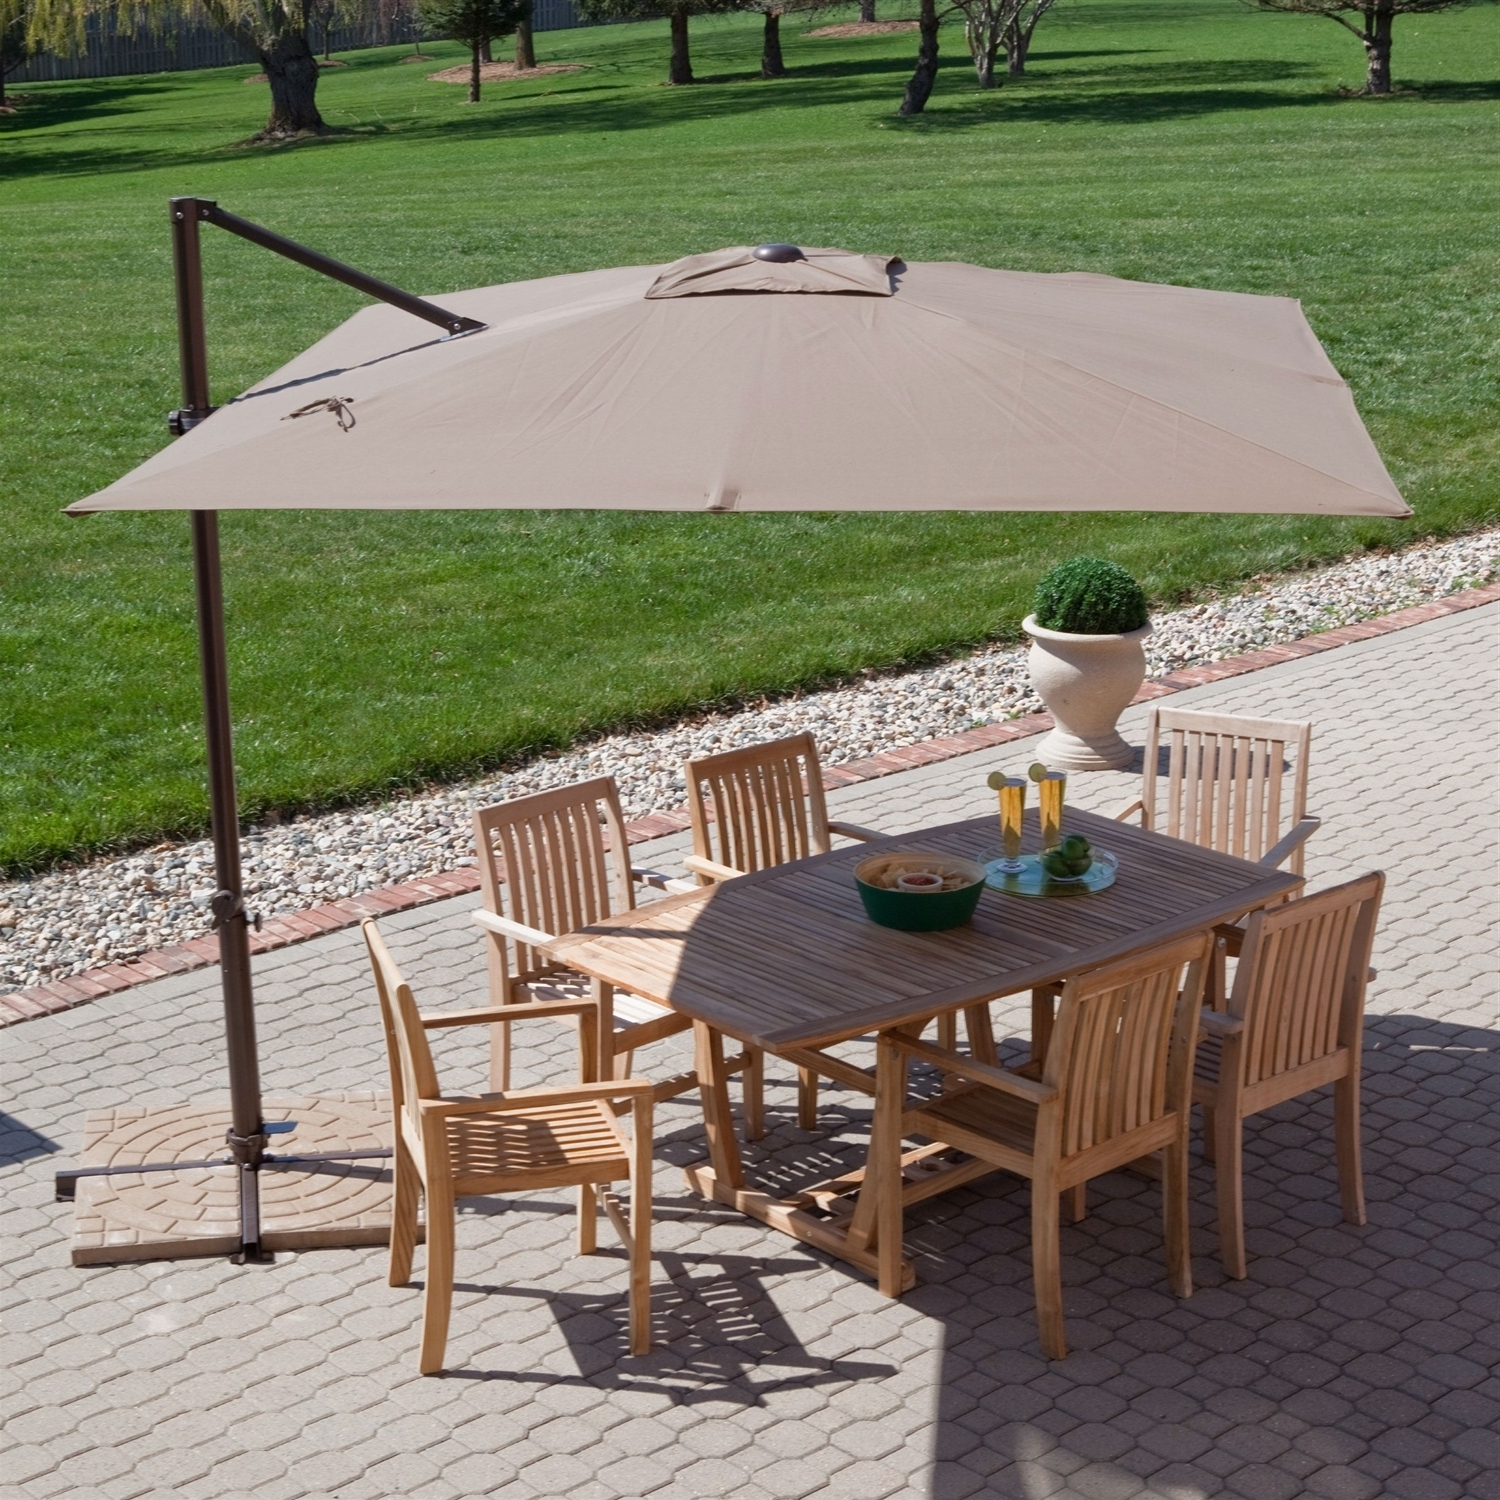 A Guide To Buying Offset Patio Umbrella – Blogbeen Pertaining To Most Up To Date Offset Patio Umbrellas (View 4 of 20)